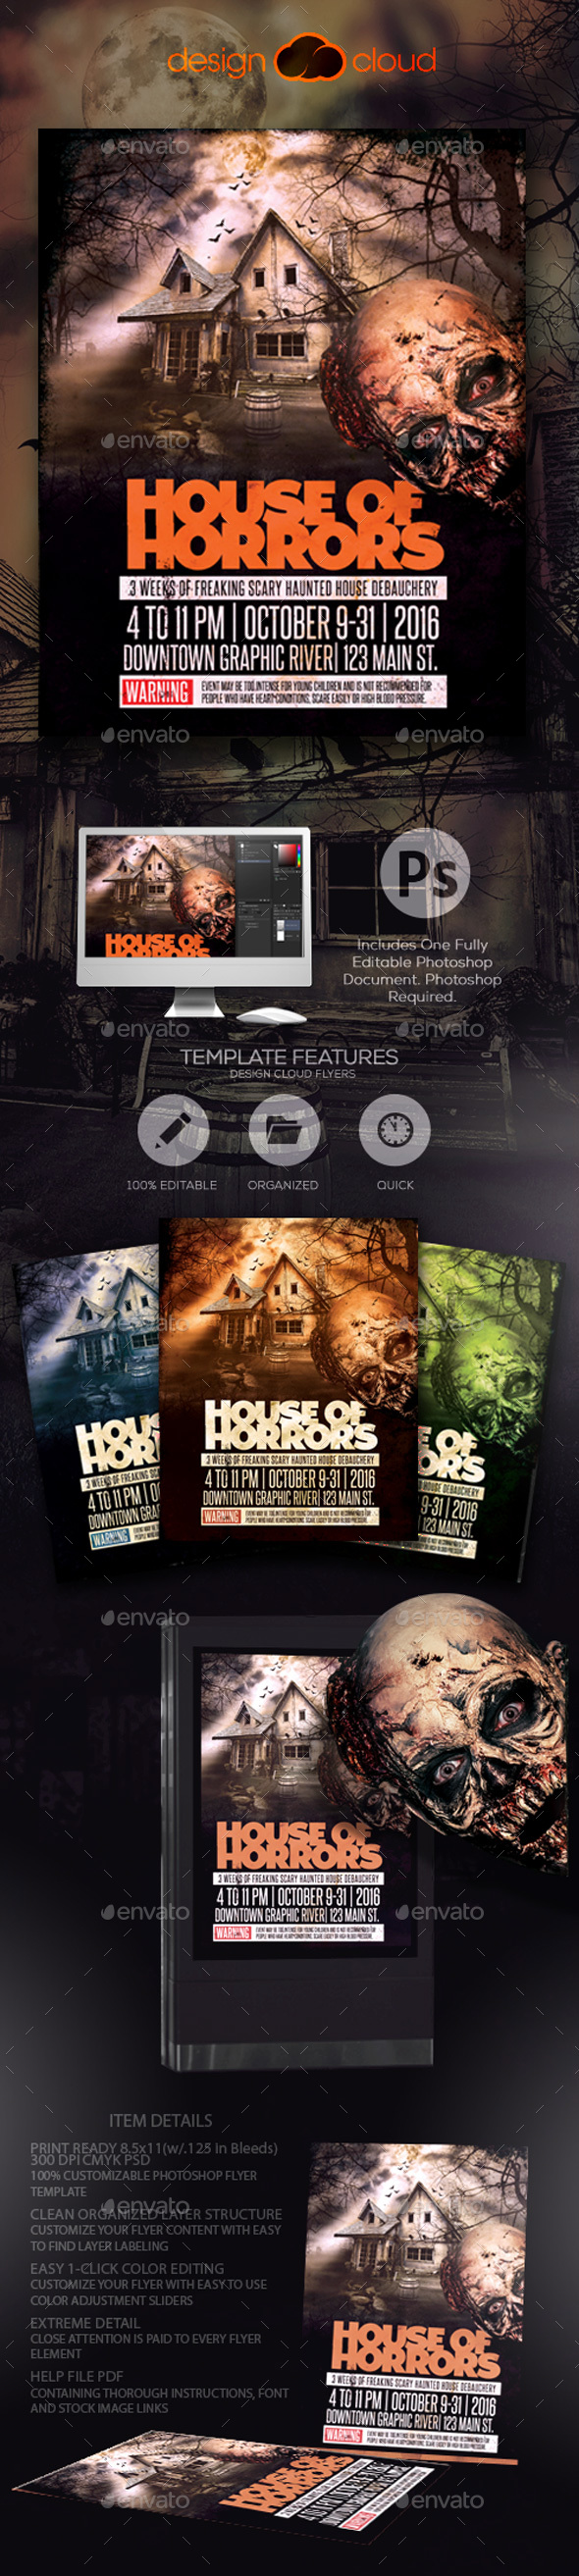 House of Horrors Halloween Flyer Template - Holidays Events